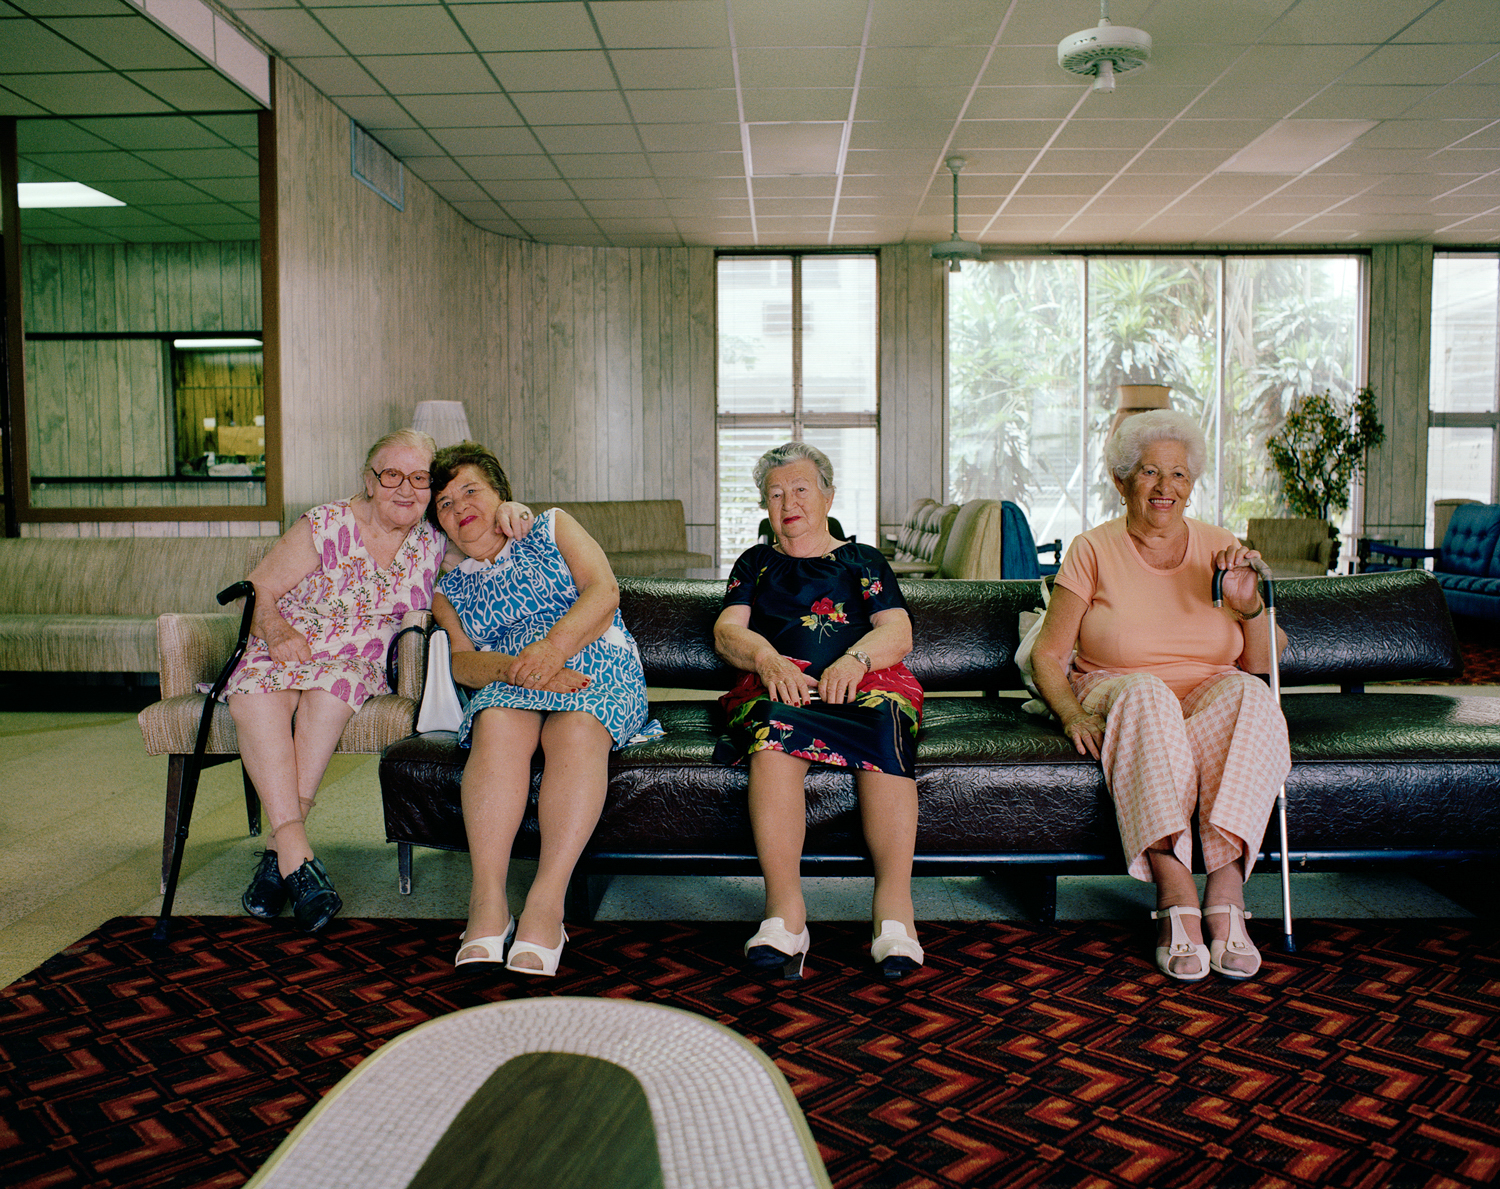 Untitled (Four Women on Couch) Miami - South Beach 1982-85